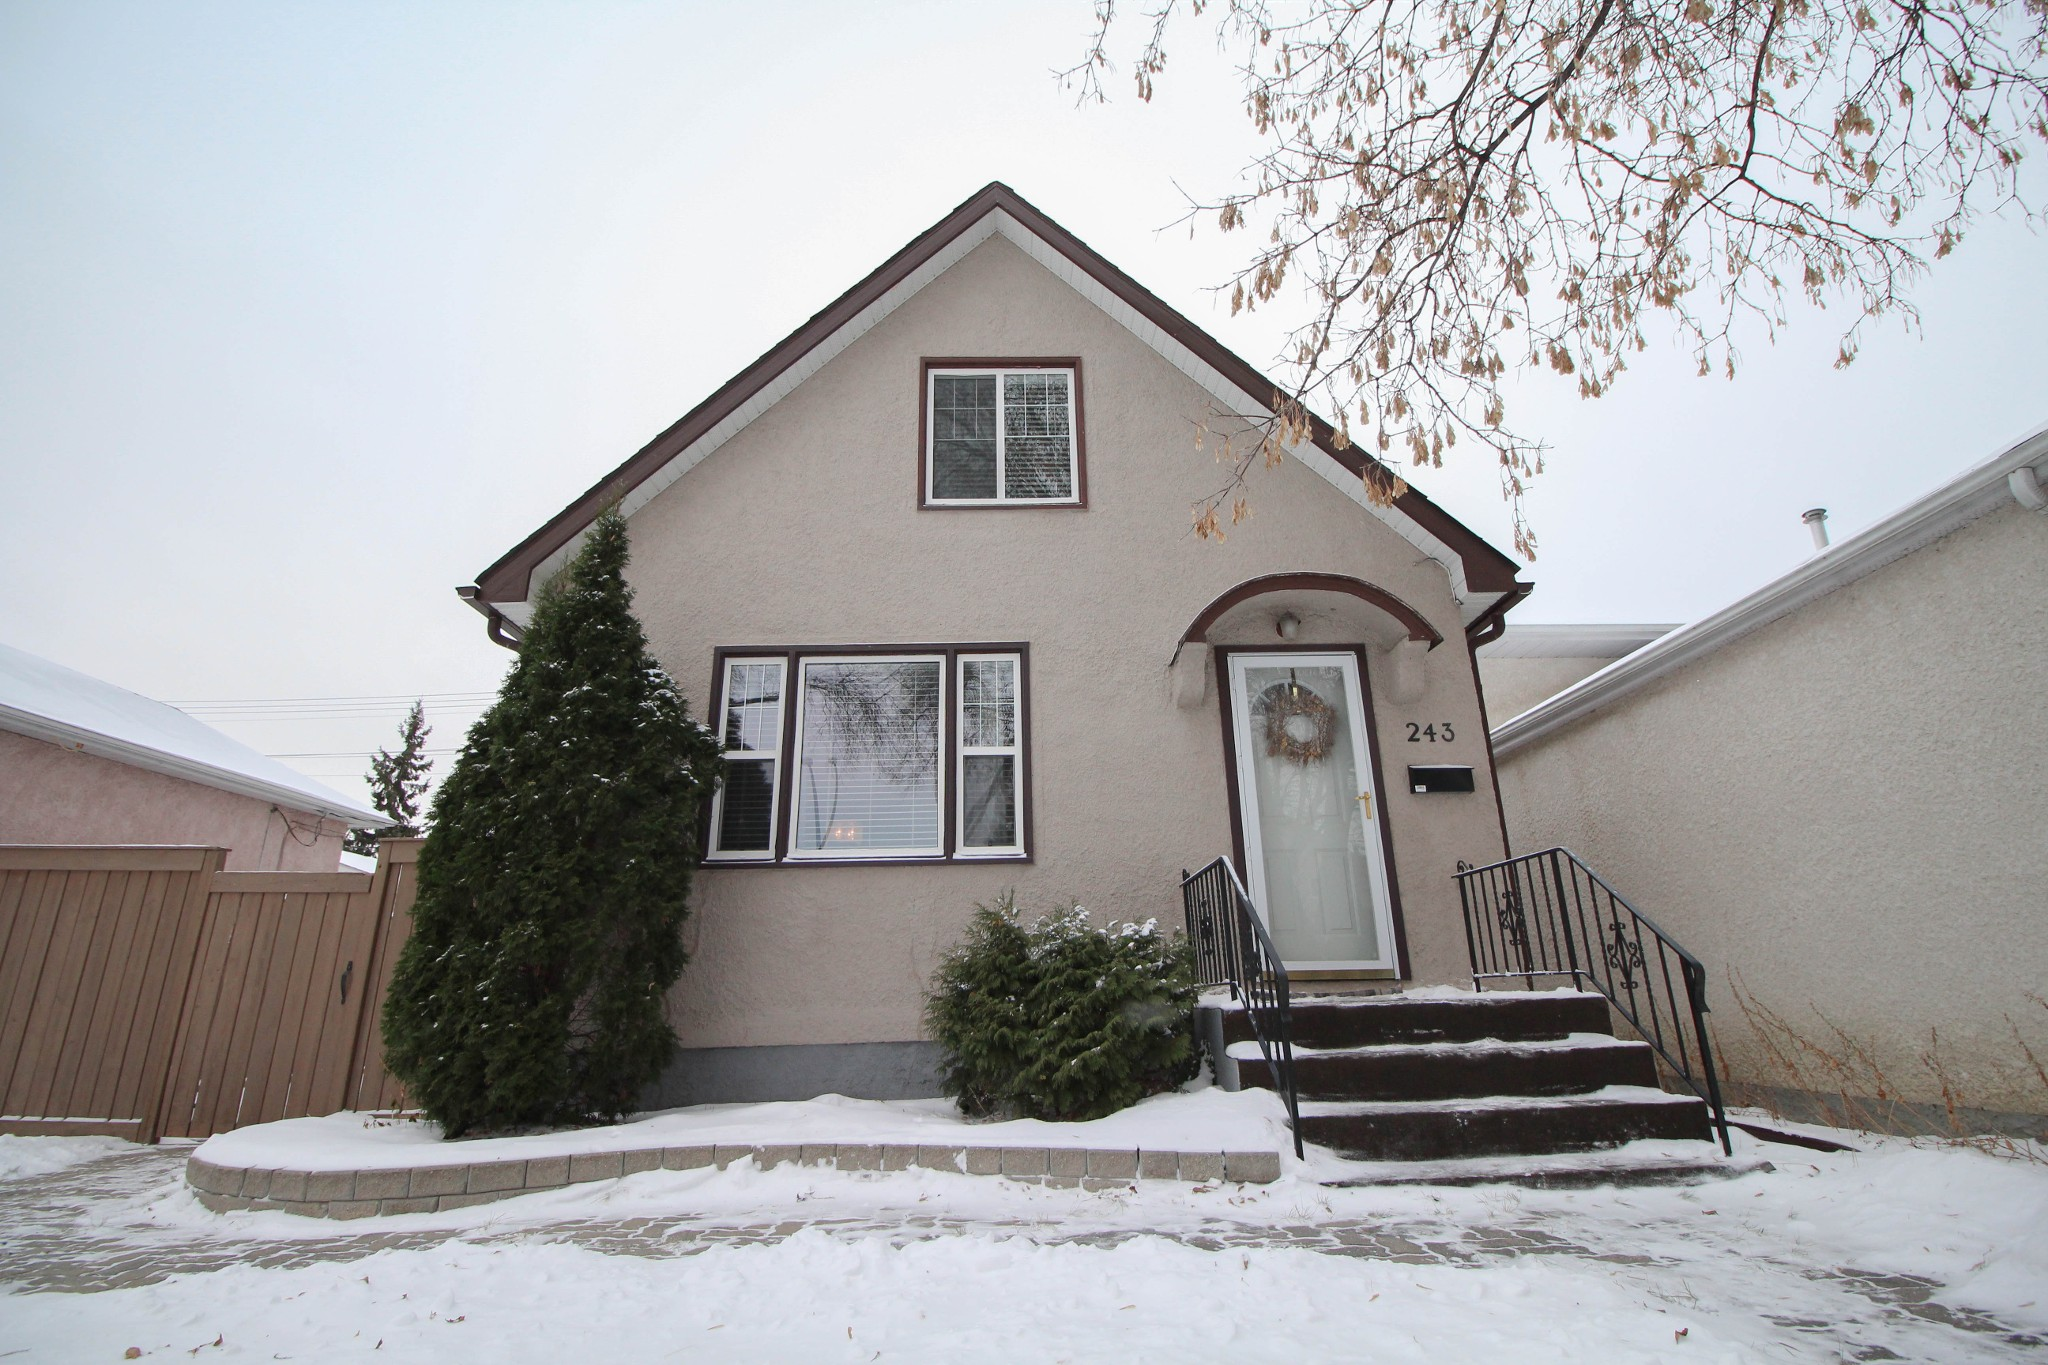 Main Photo: Beautiful remodeled 1.5 storey home for sale in the heart of West Kildonan